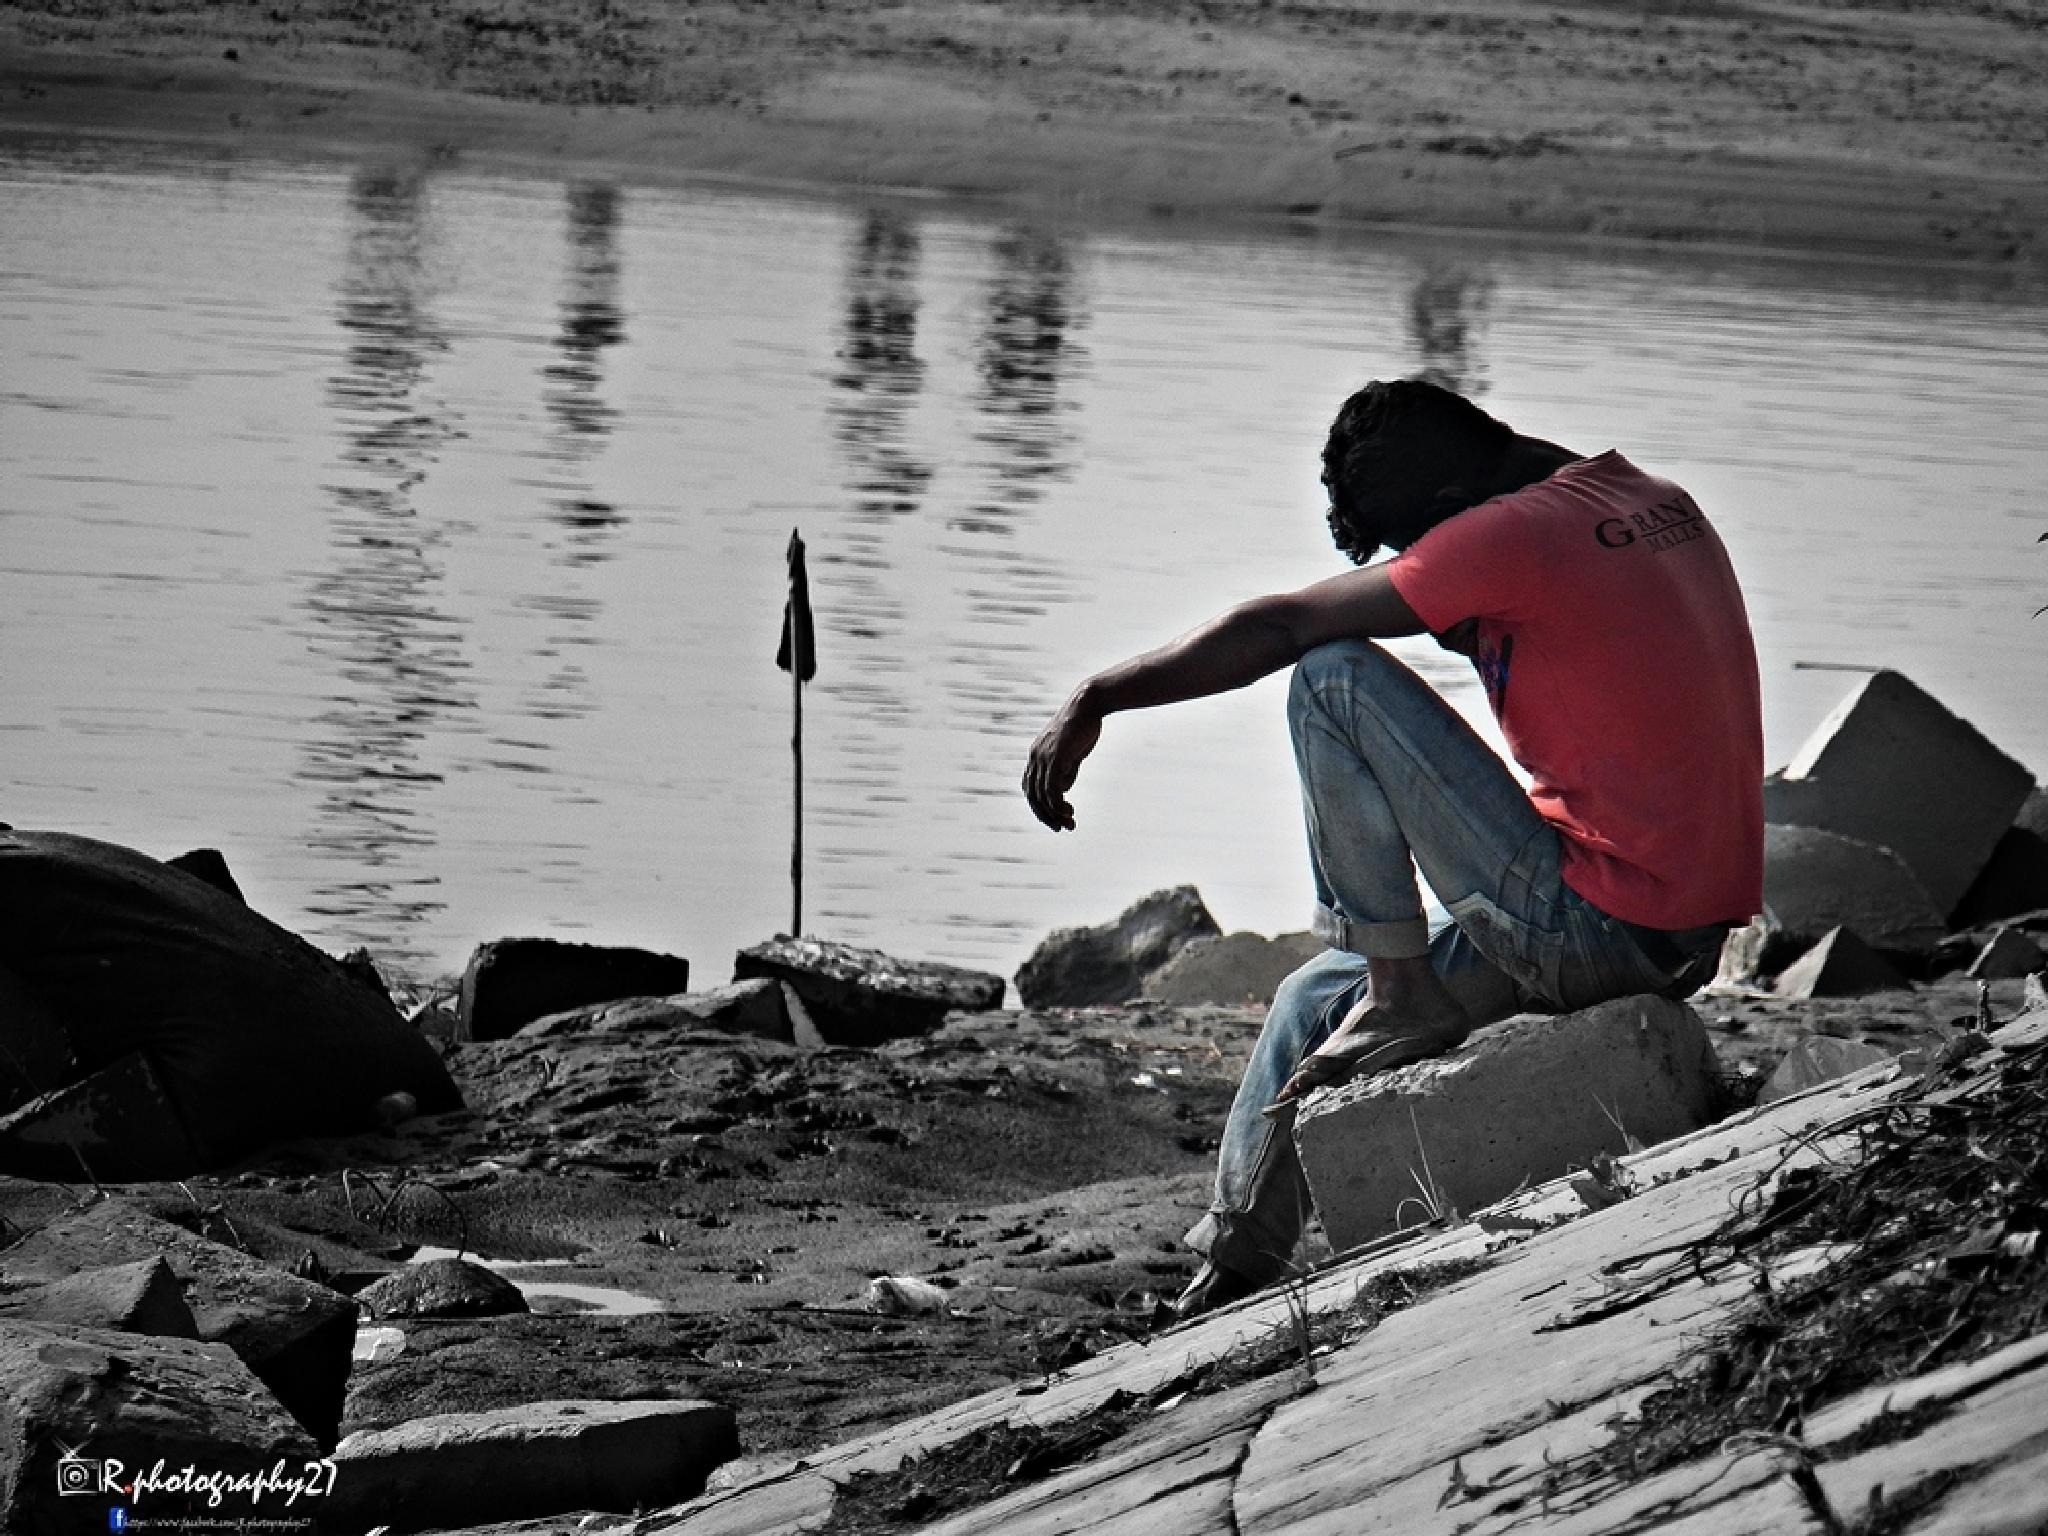 Depressed 1 by Md Ripon ©R.photography27